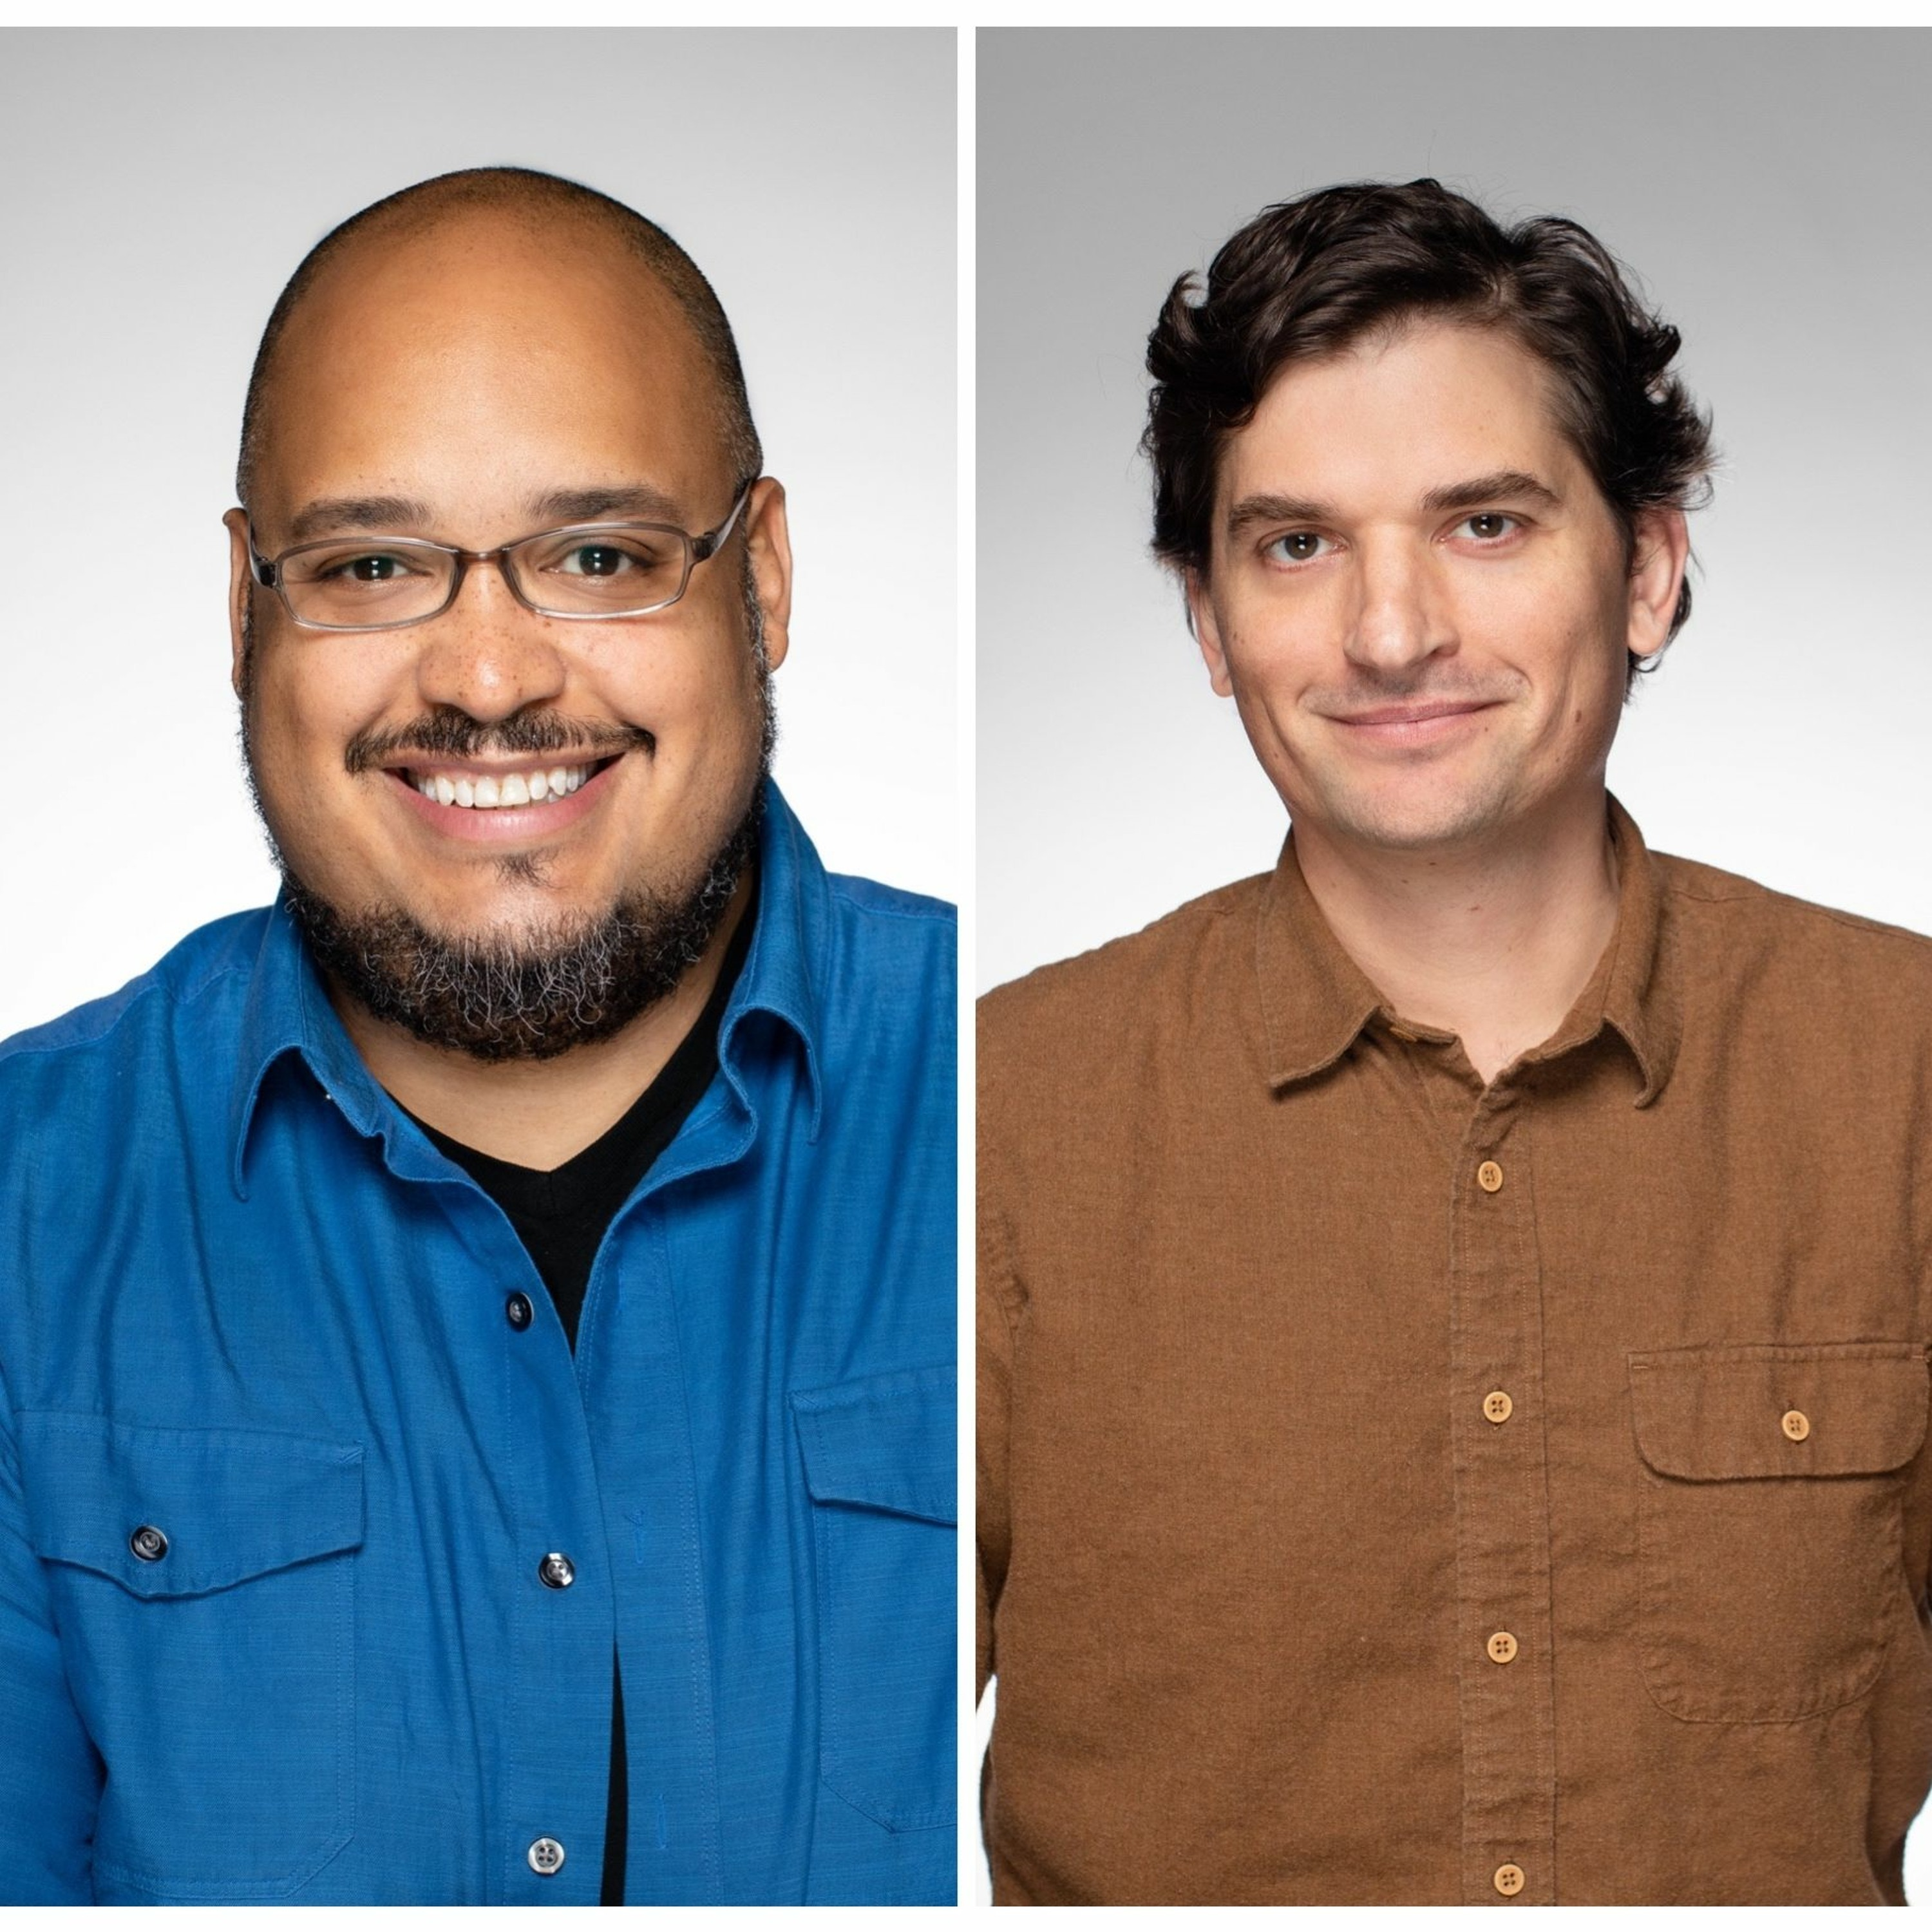 Y Combinator's Michael Seibel & Dalton Caldwell - Lessons from 5000 Entrepreneurs